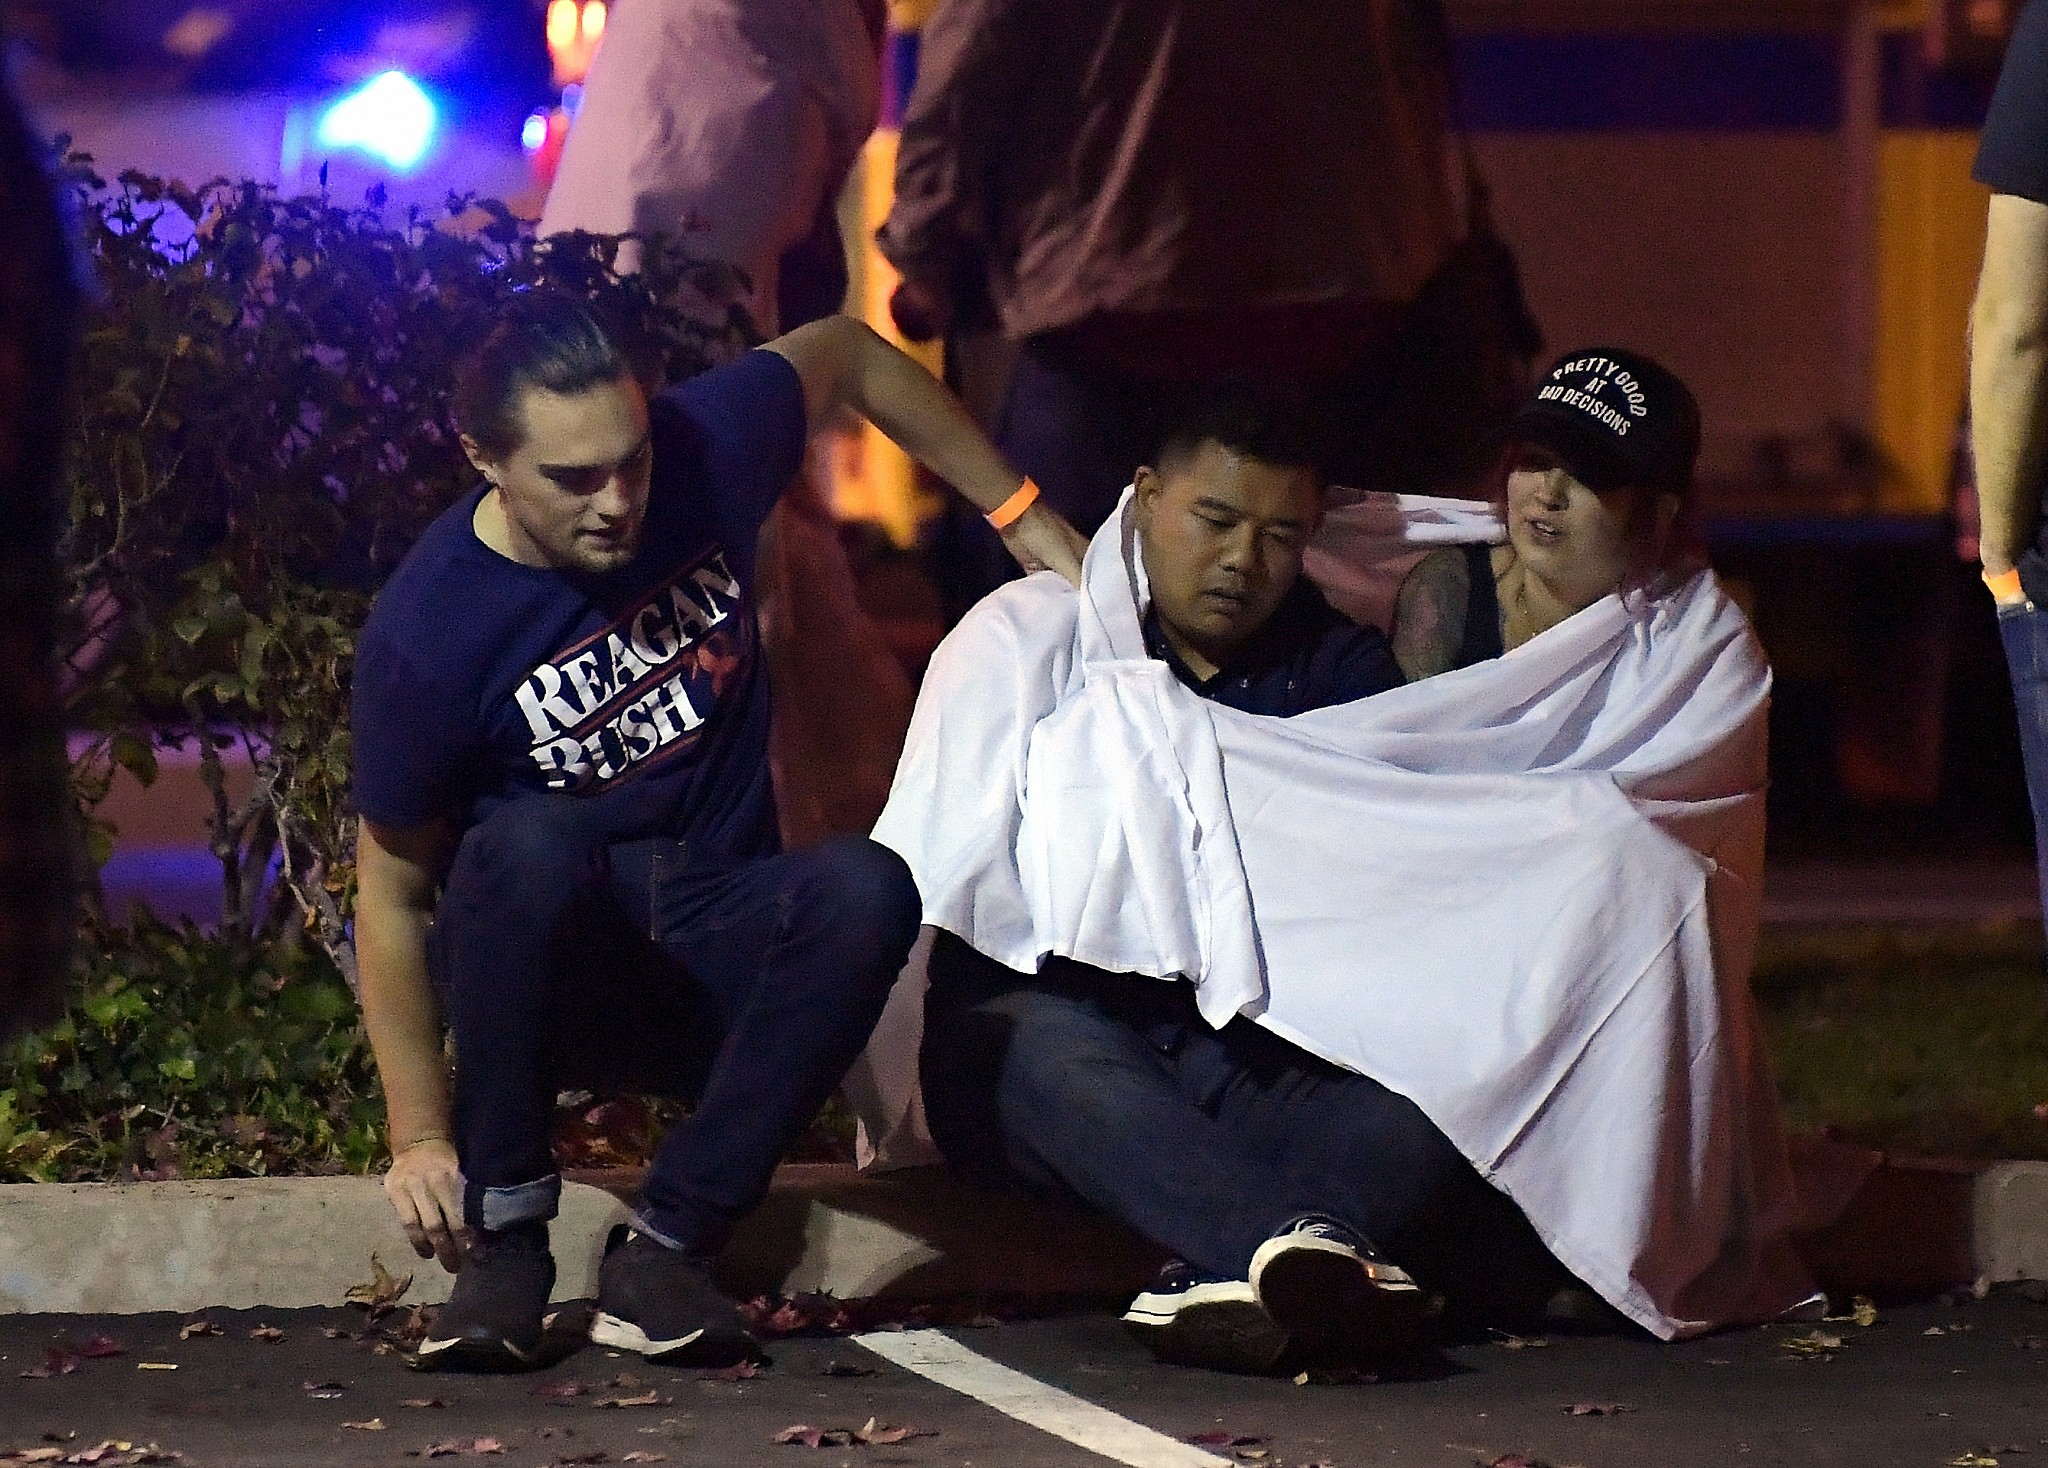 Thousand Oaks Calif. where a gunman opened fire Wednesday inside a country dance bar crowded with hundreds of people